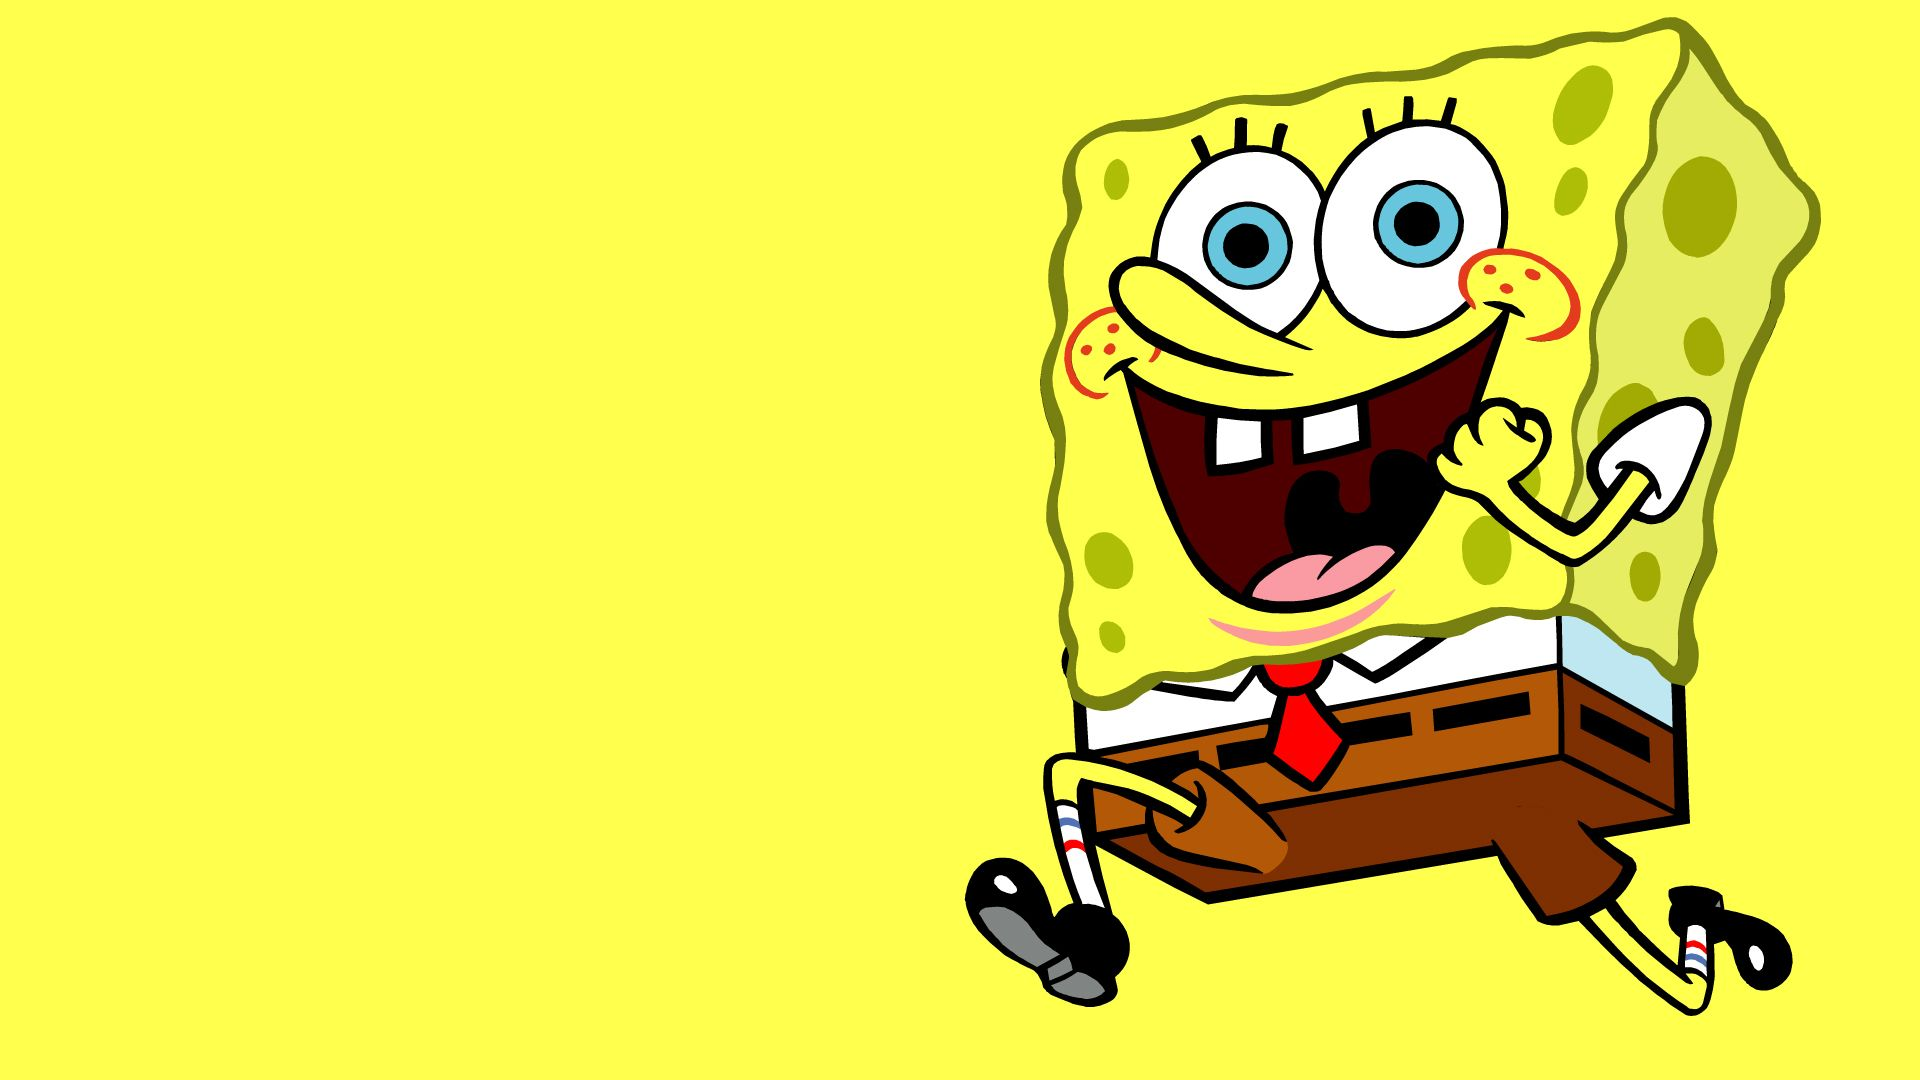 Spongebob Wallpaper Spongebob Wallpaper Spongebob Background Cute Wallpapers